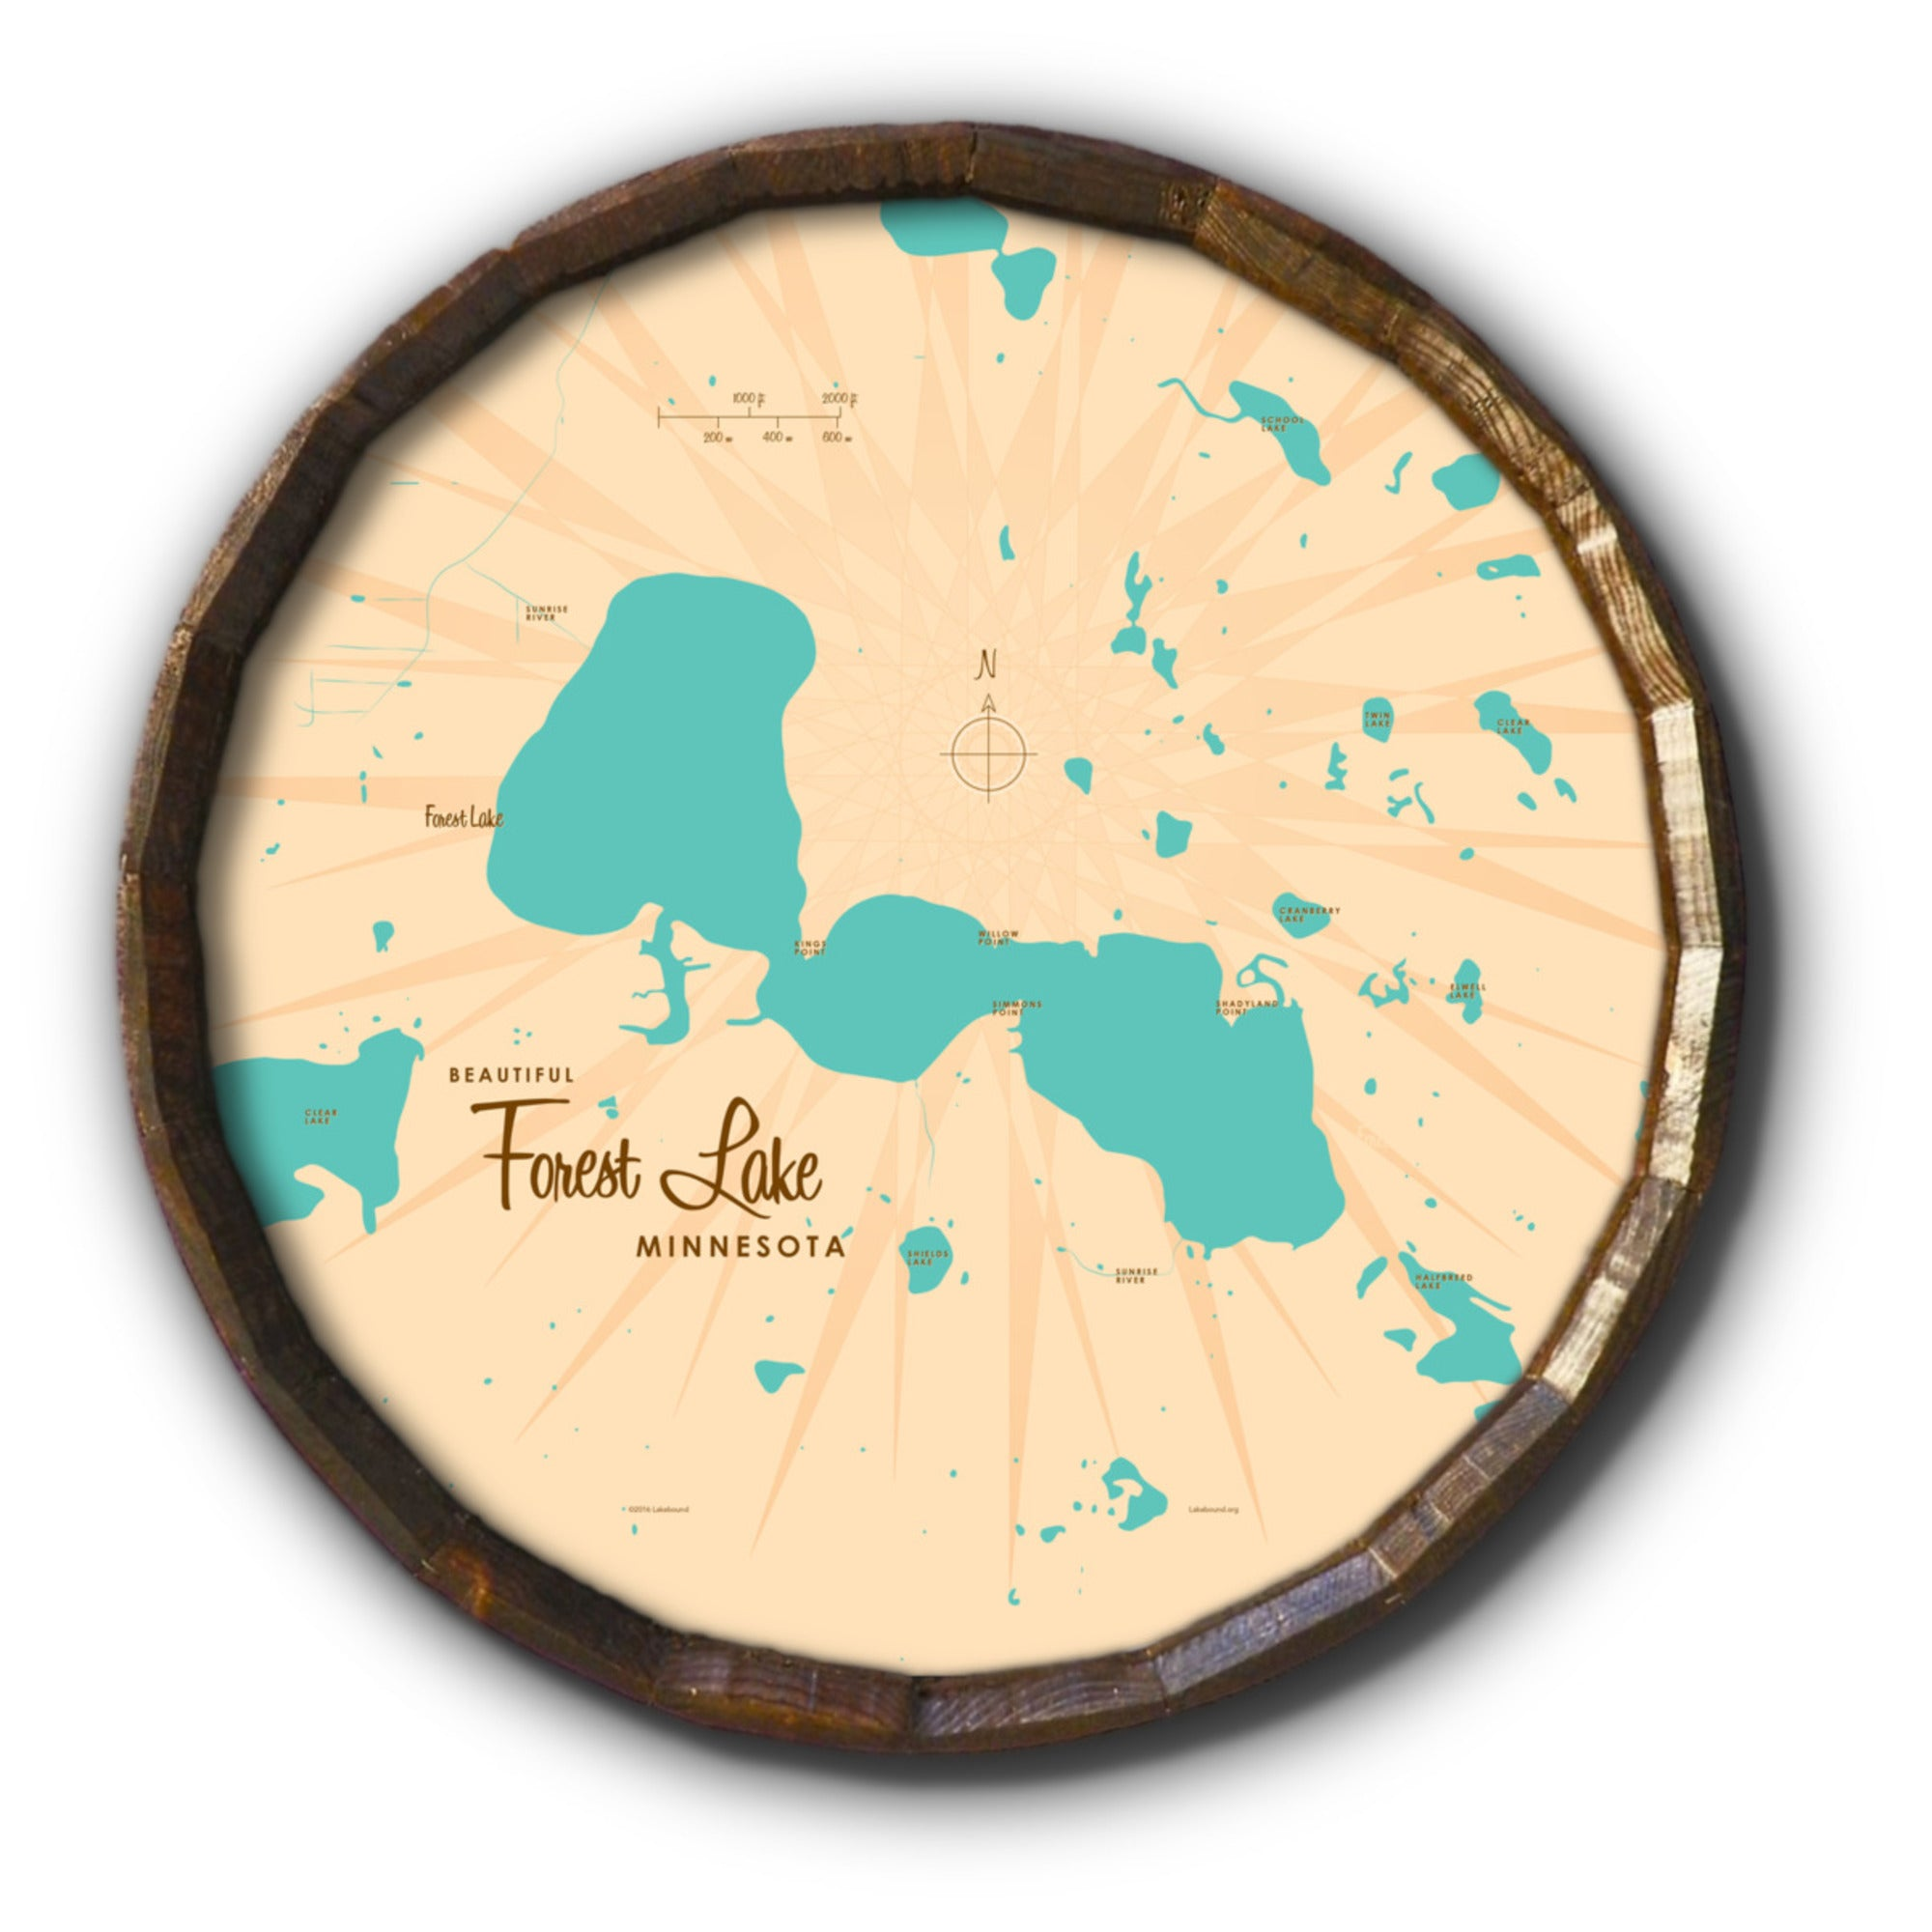 Forest Lake Minnesota, Barrel End Map Art